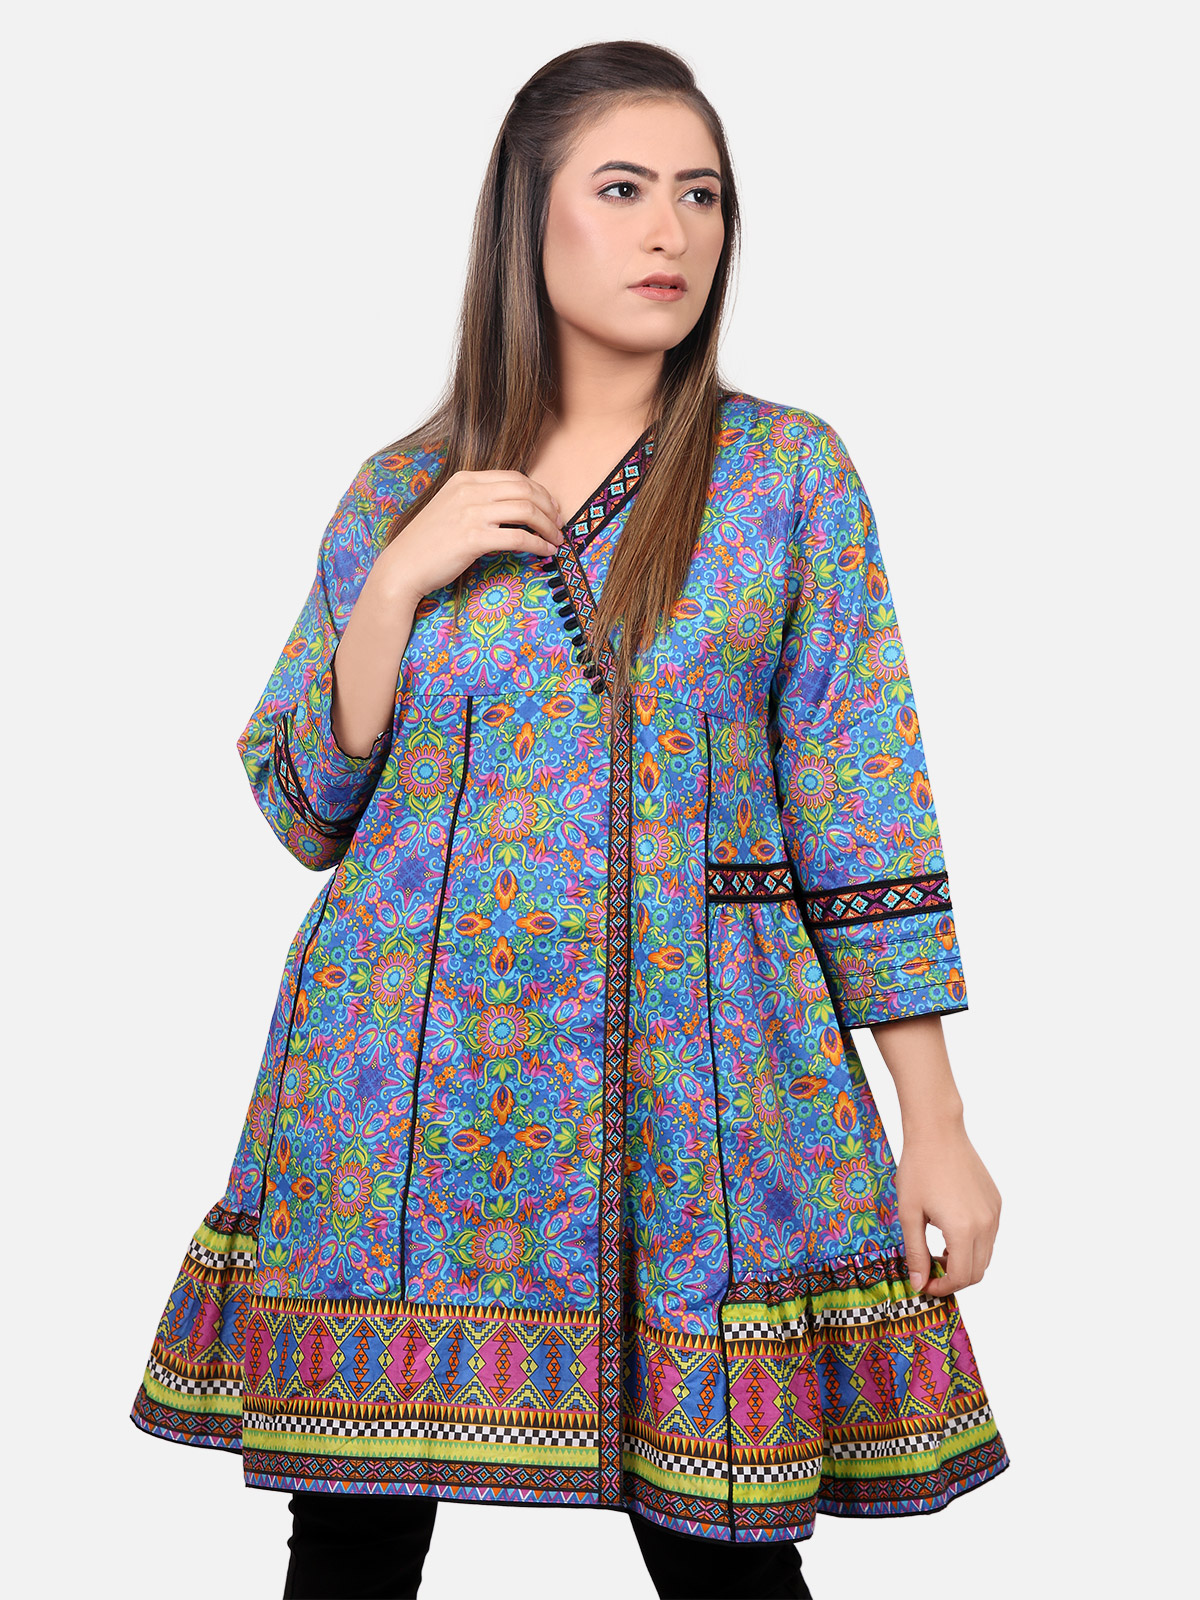 Stylish Funky Women Summer Casual Tops Kurtis 20 Trends